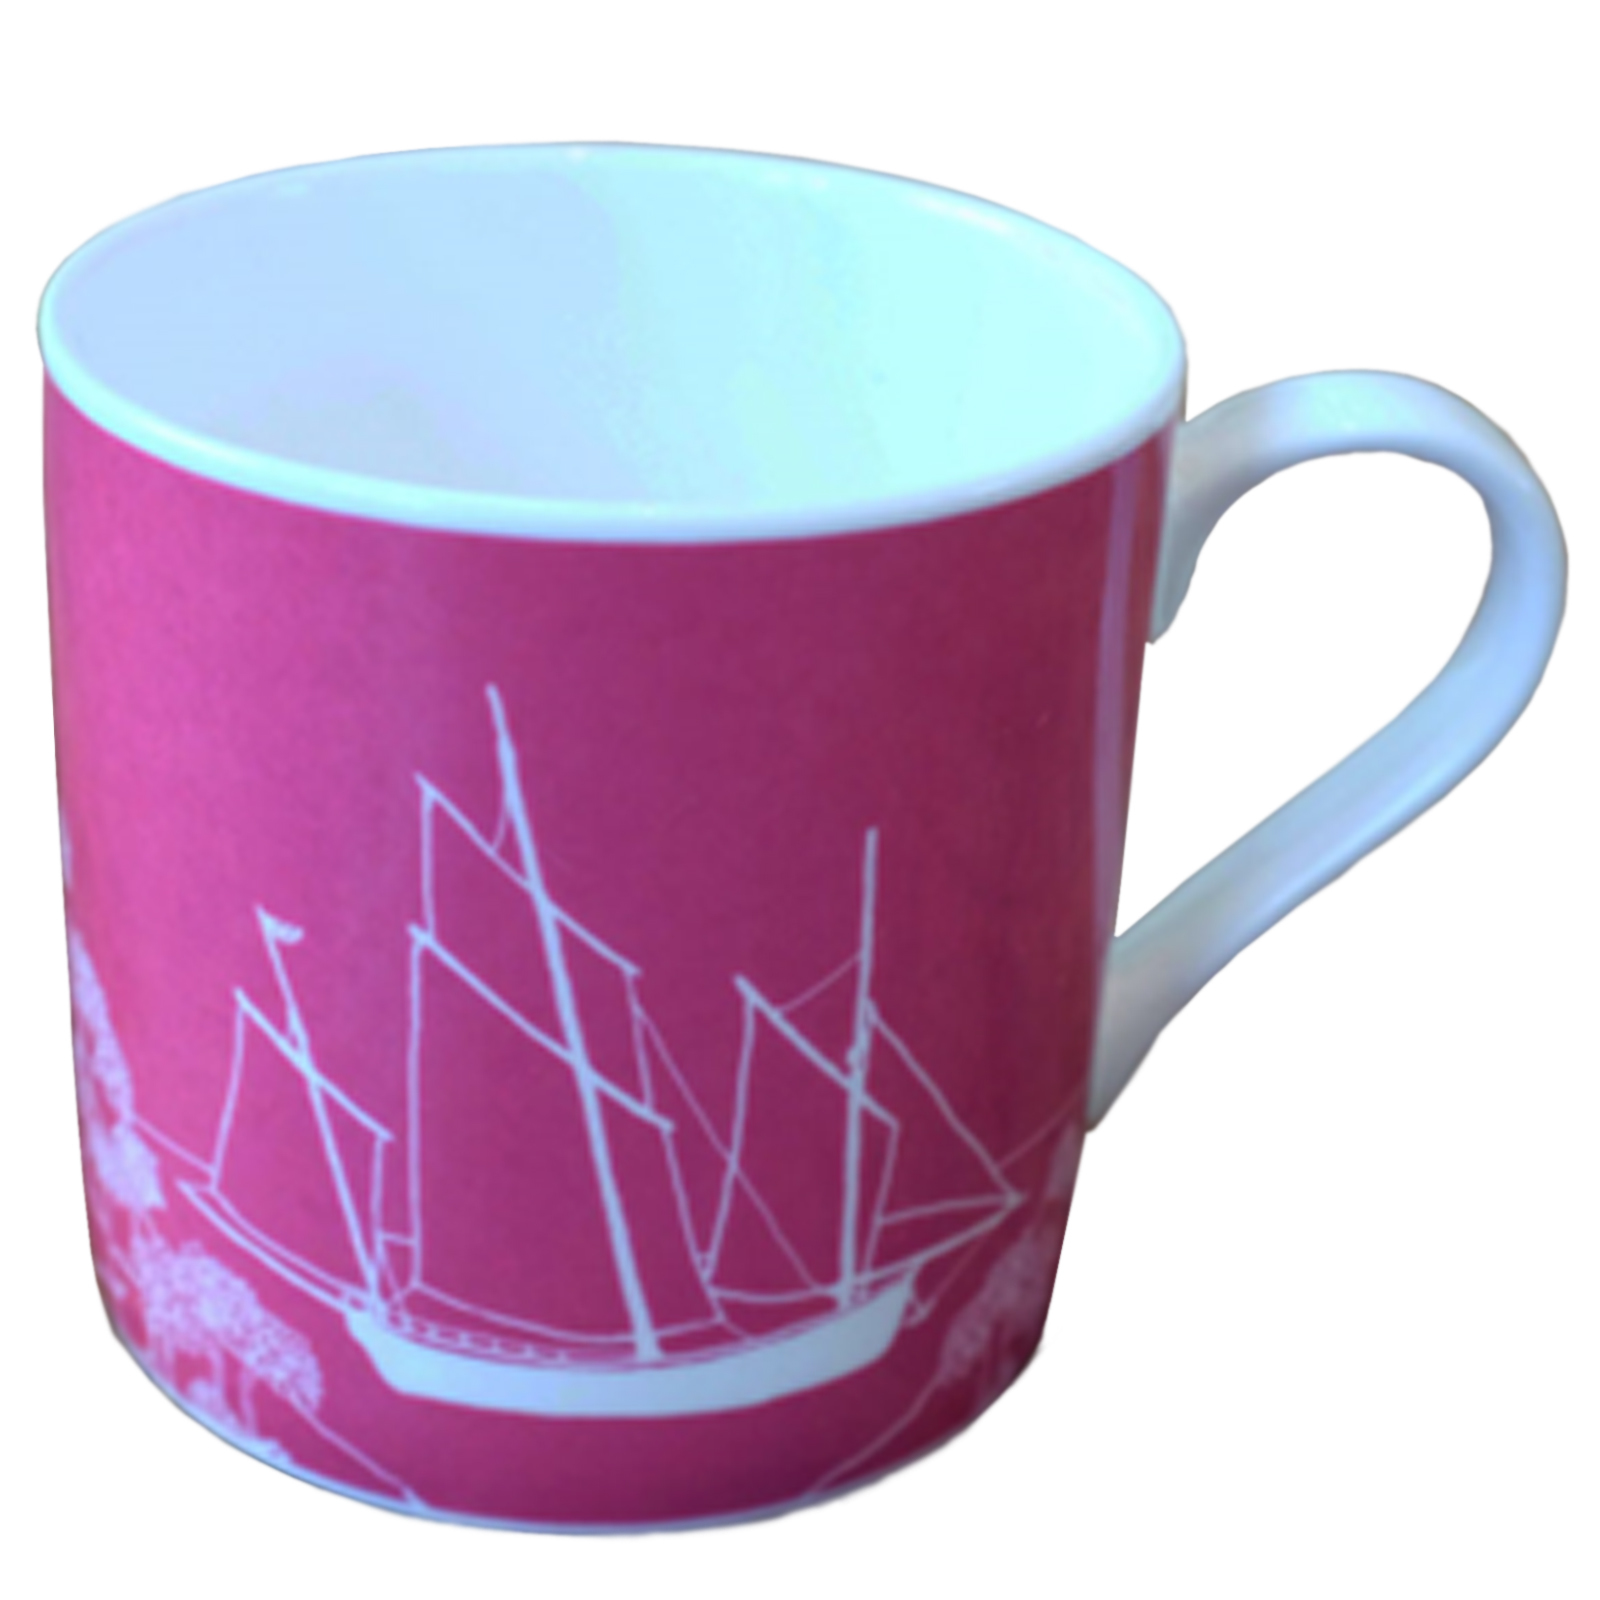 Fine Bone China Mug with Cornish Privateer Boat Design in Raspberry - Limited Edition